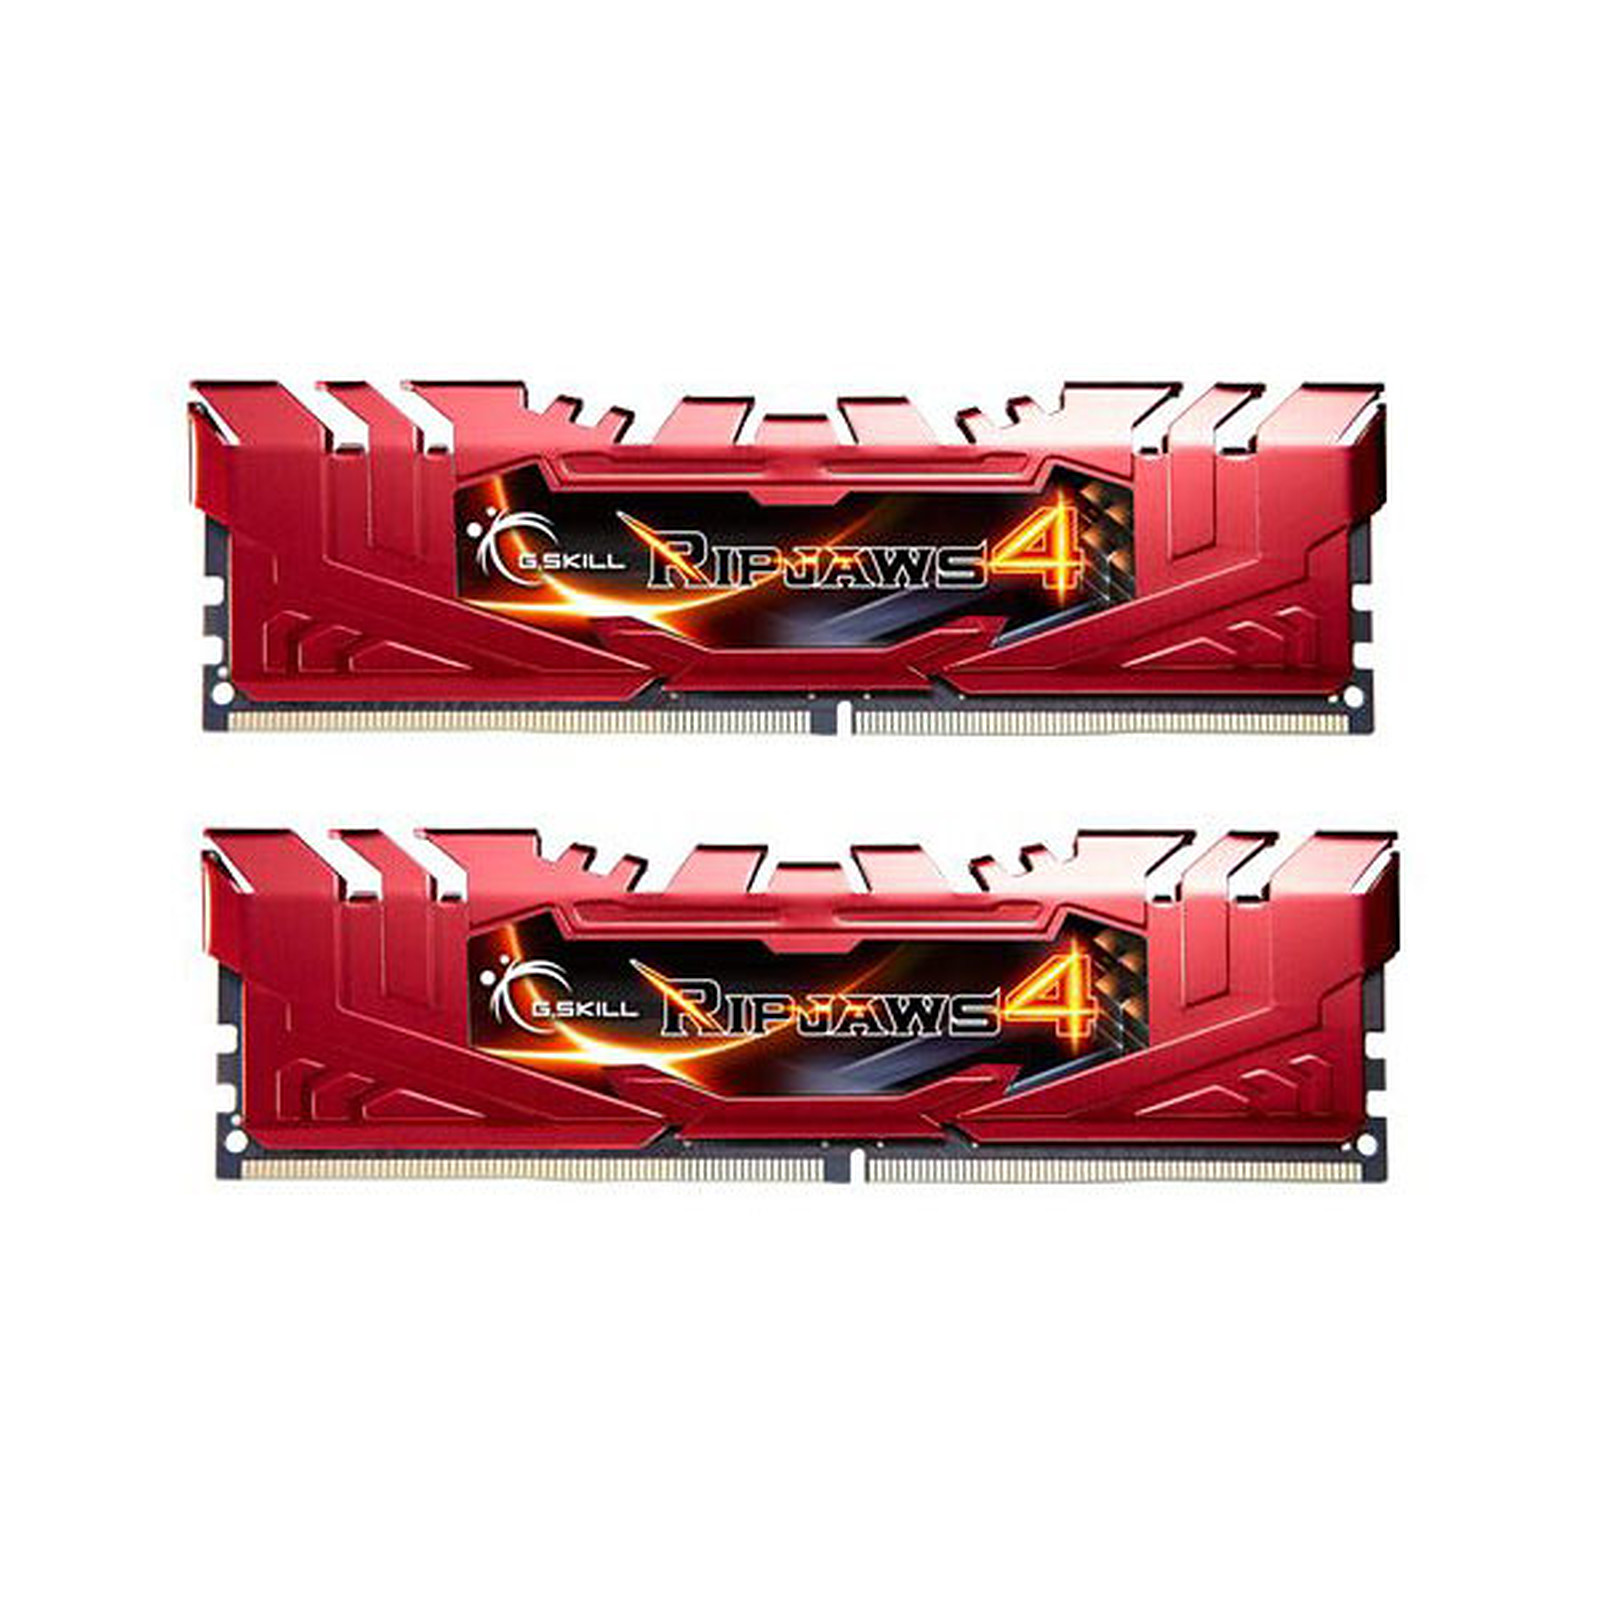 G.Skill RipJaws 4 Series Rouge 16 Go (2x 8 Go) DDR4 2133 MHz CL15